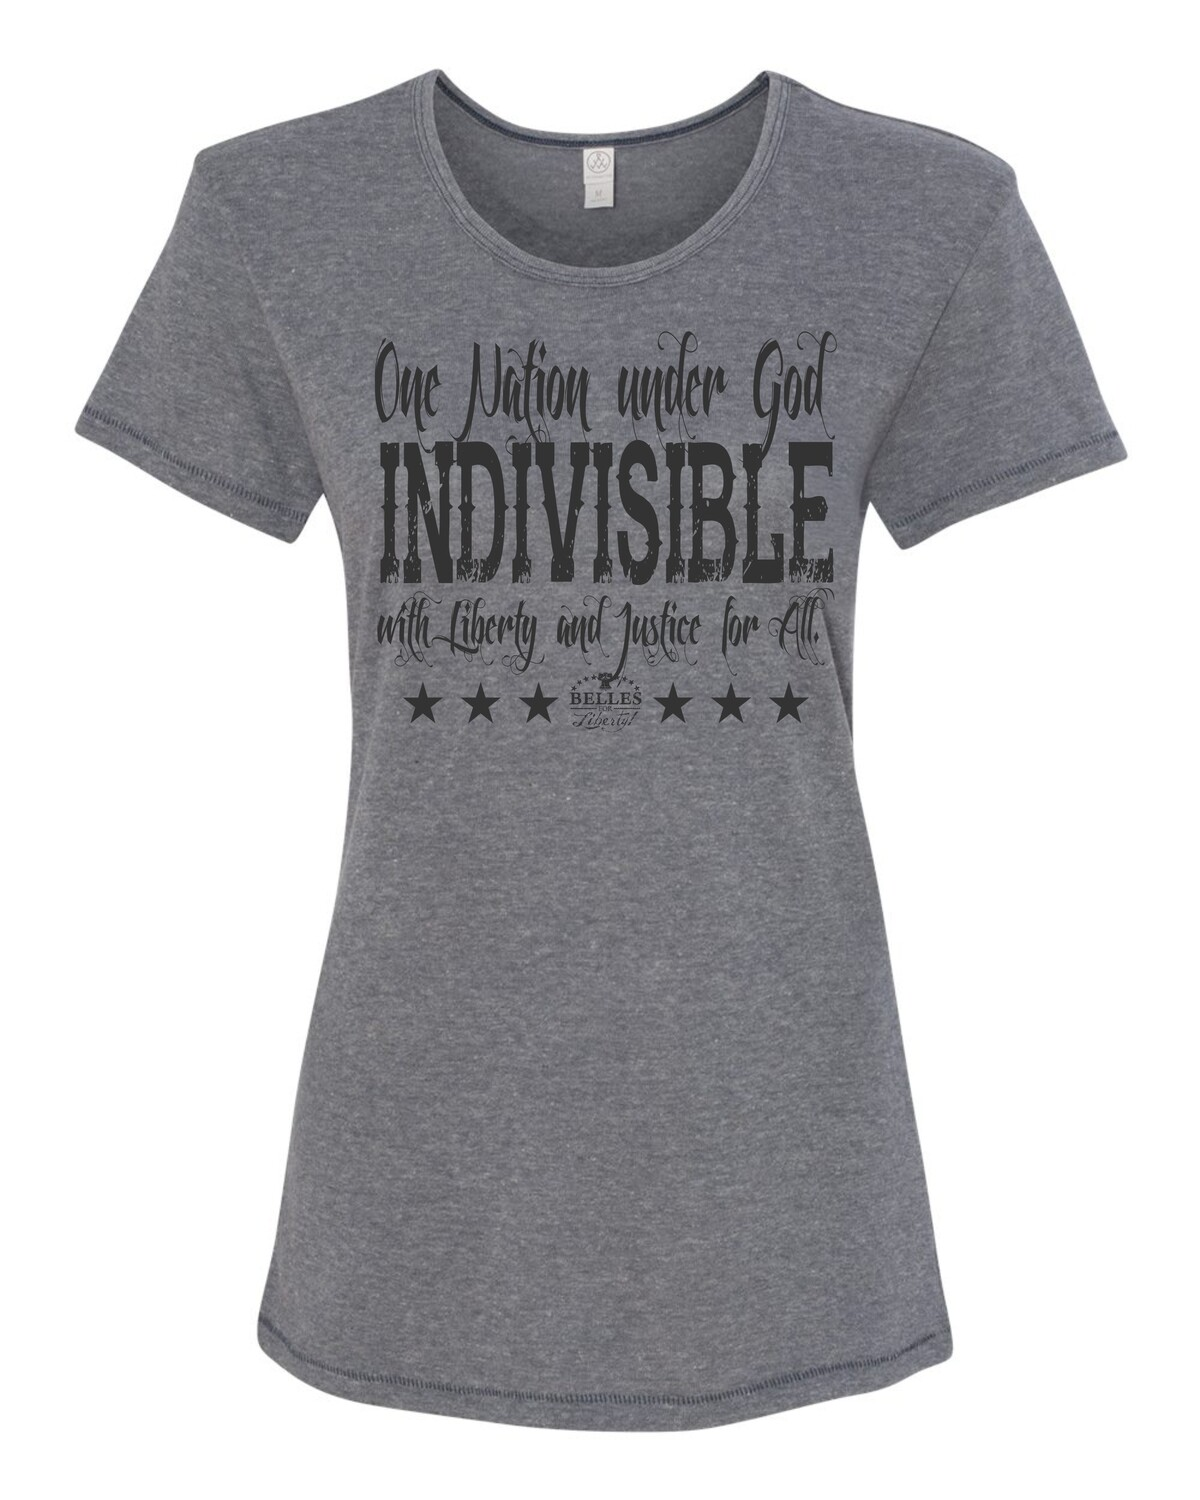 I-5052-INDIVISIBLE